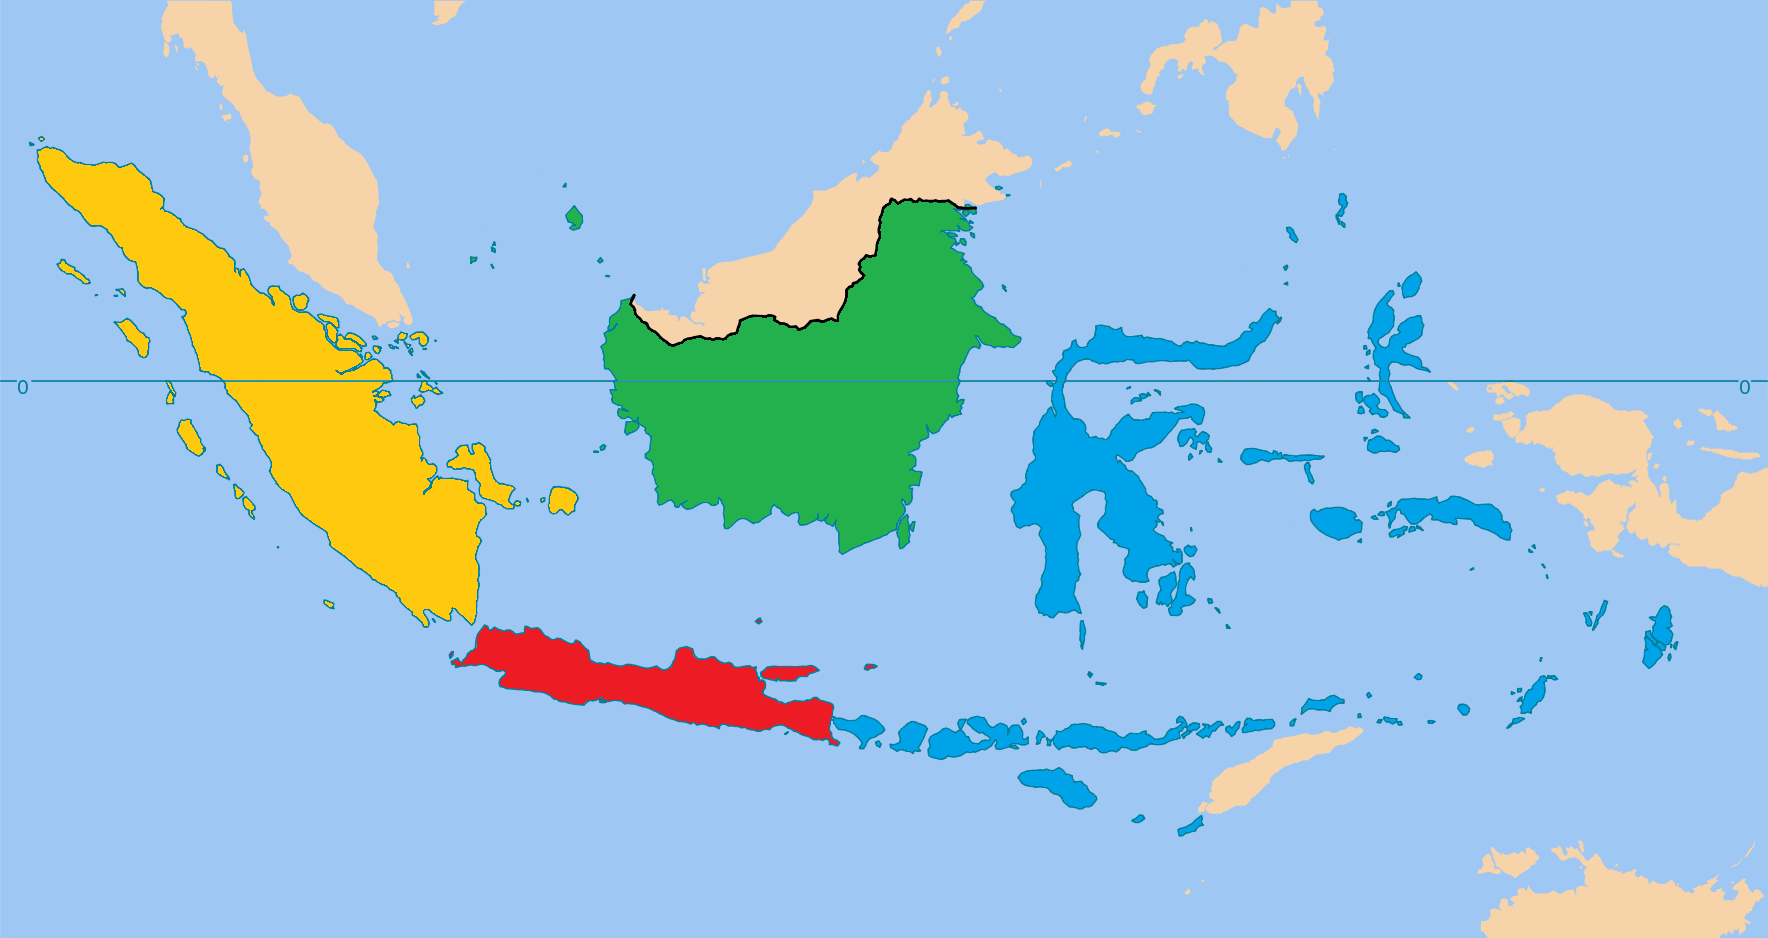 Image Map Of Indonesia Central Italypng Alternative History - Indonesia map